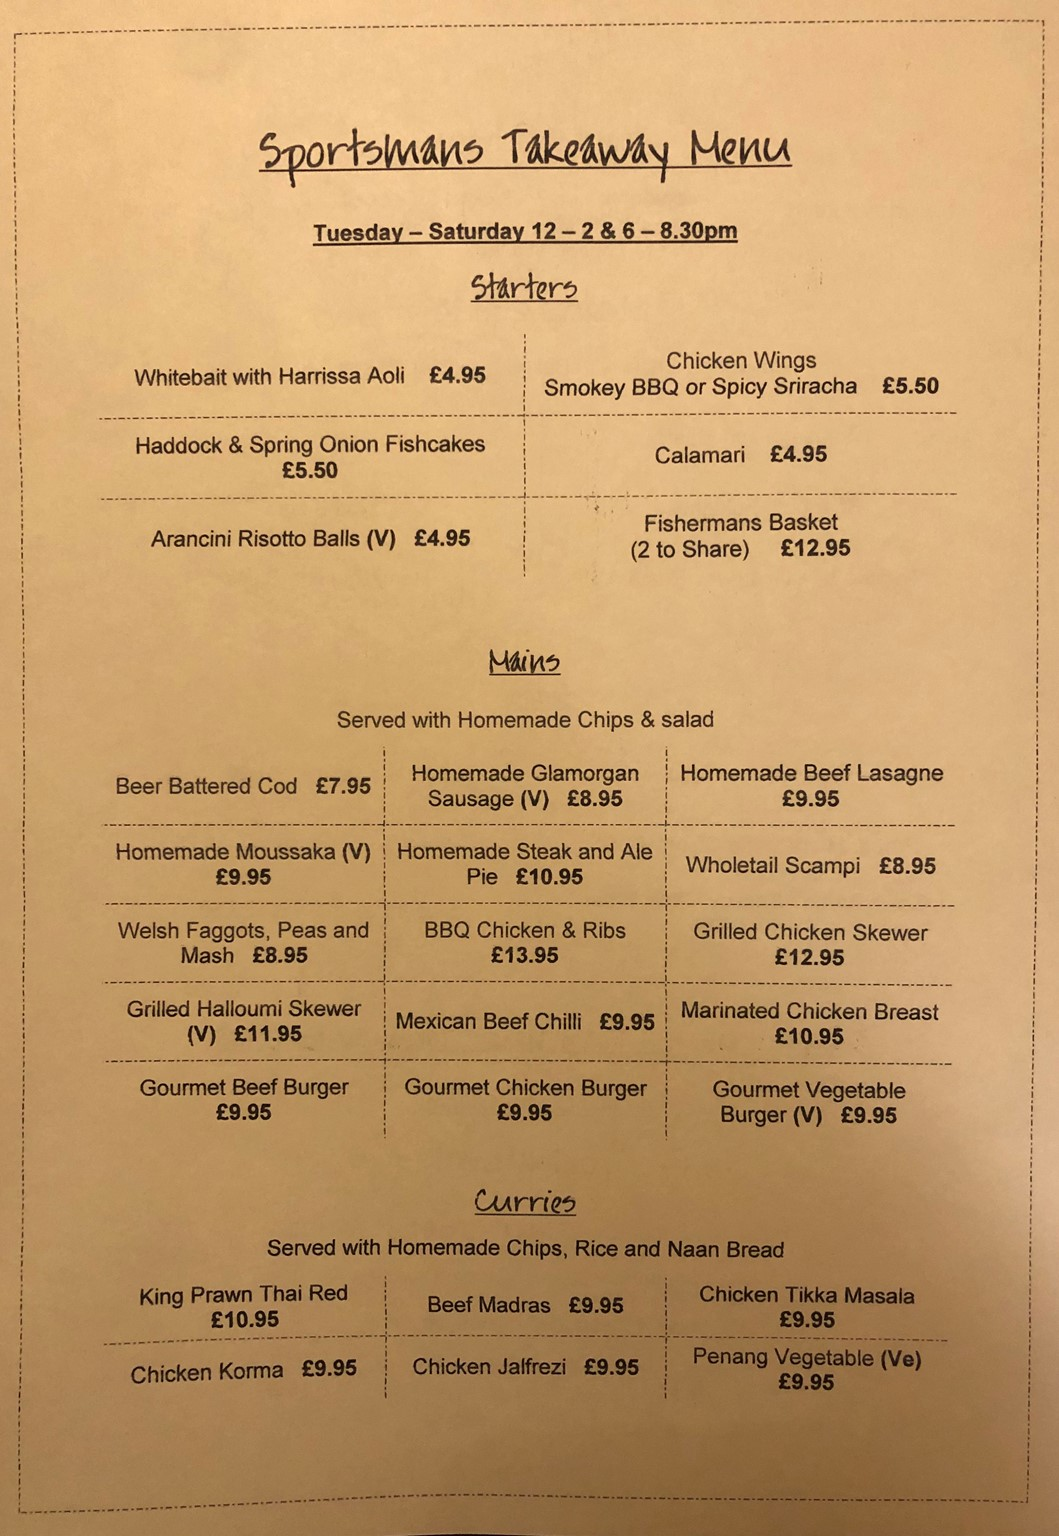 Takeaway Menu - Starters, Mains, Curries, Homemade Pizza & Specials.